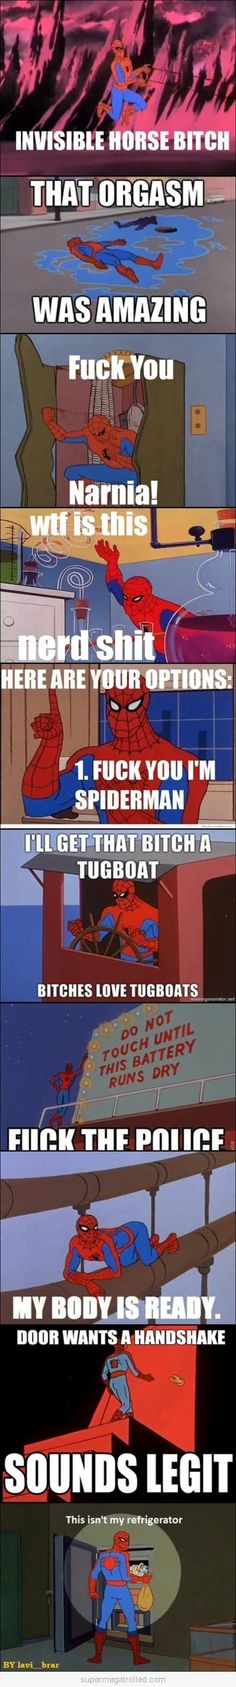 '60s Spiderman Meme